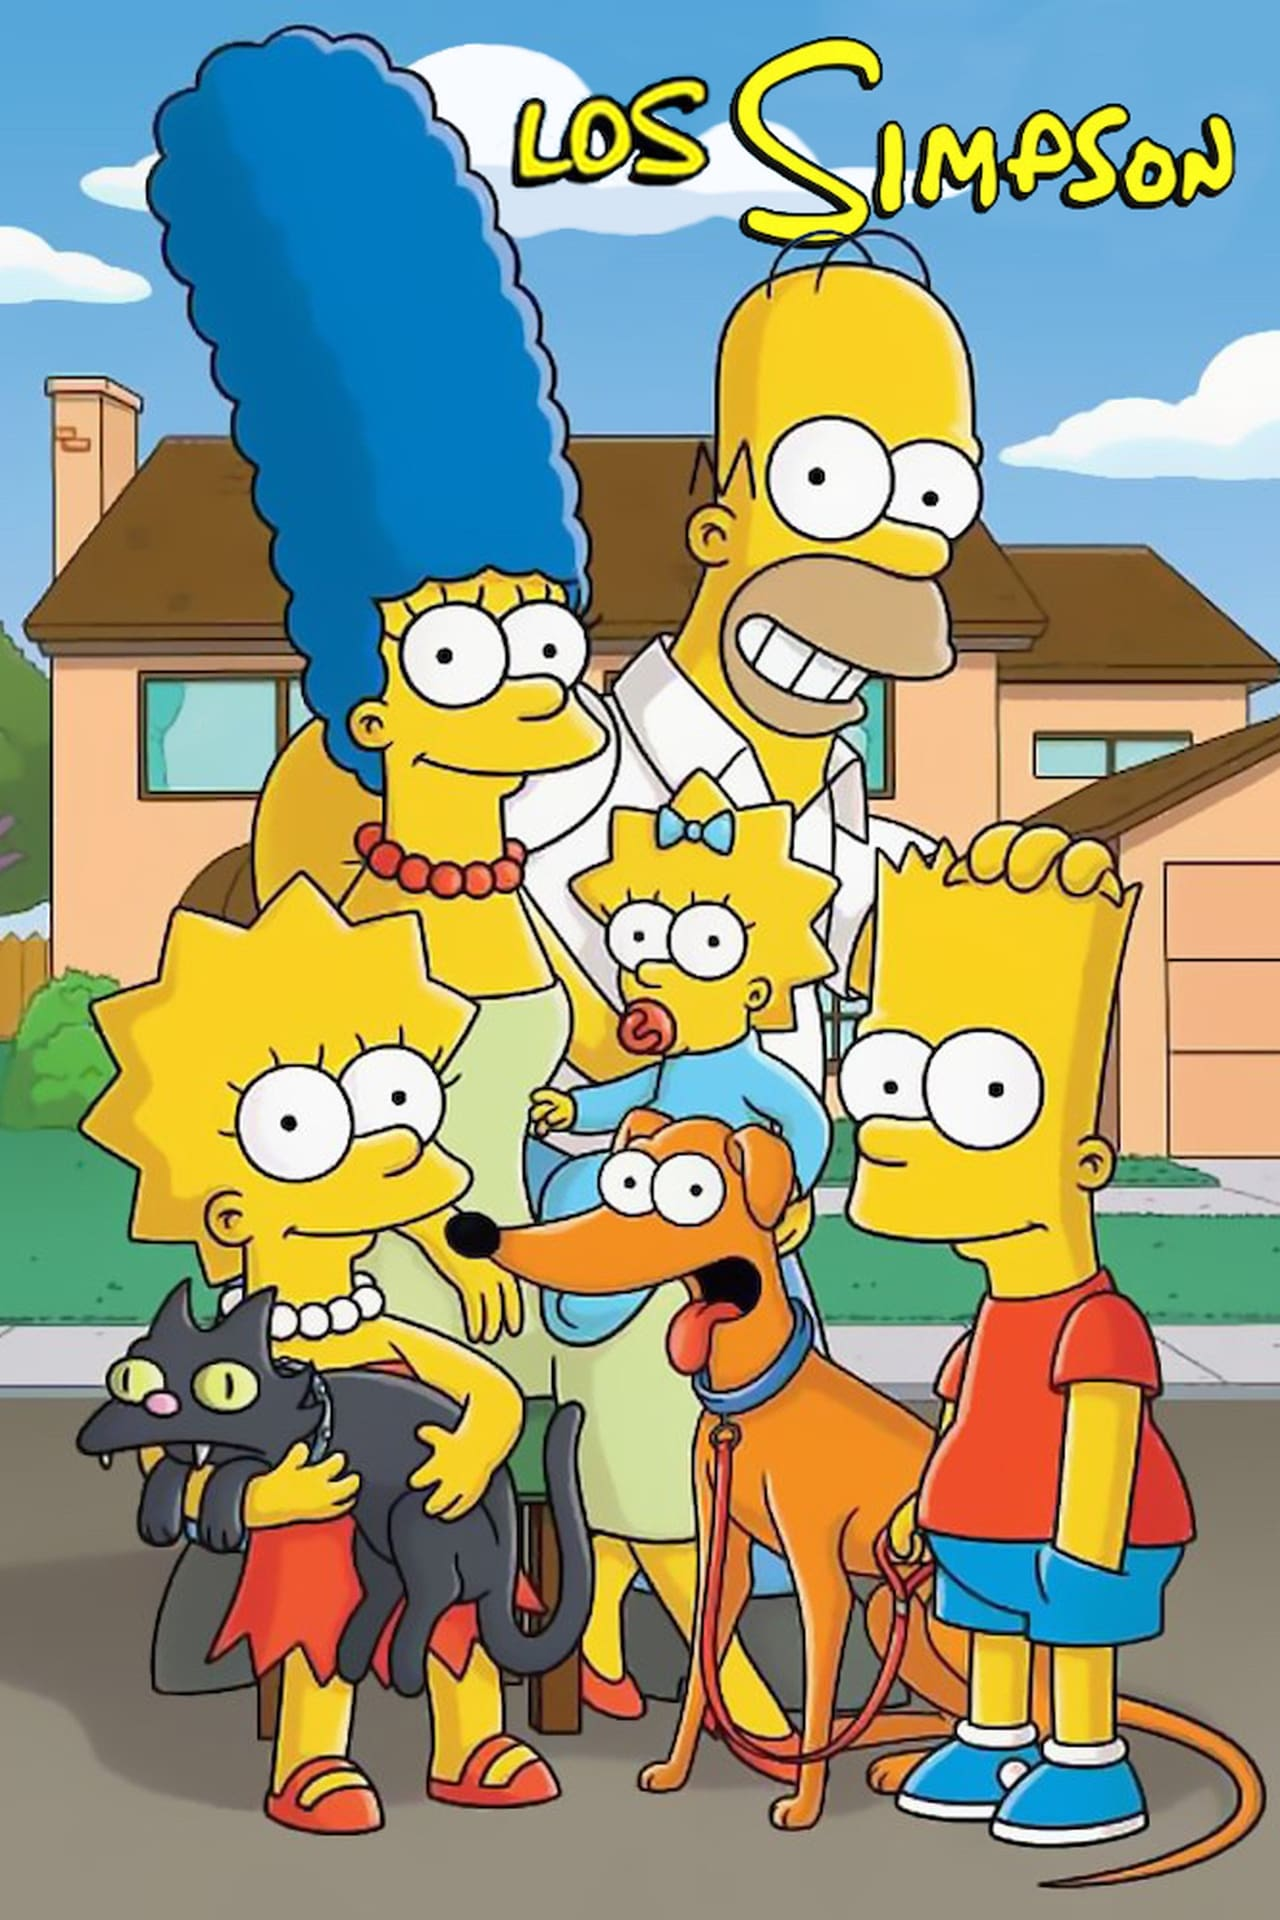 Los Simpson - Season 22 Episode 6 : Tonti Monty